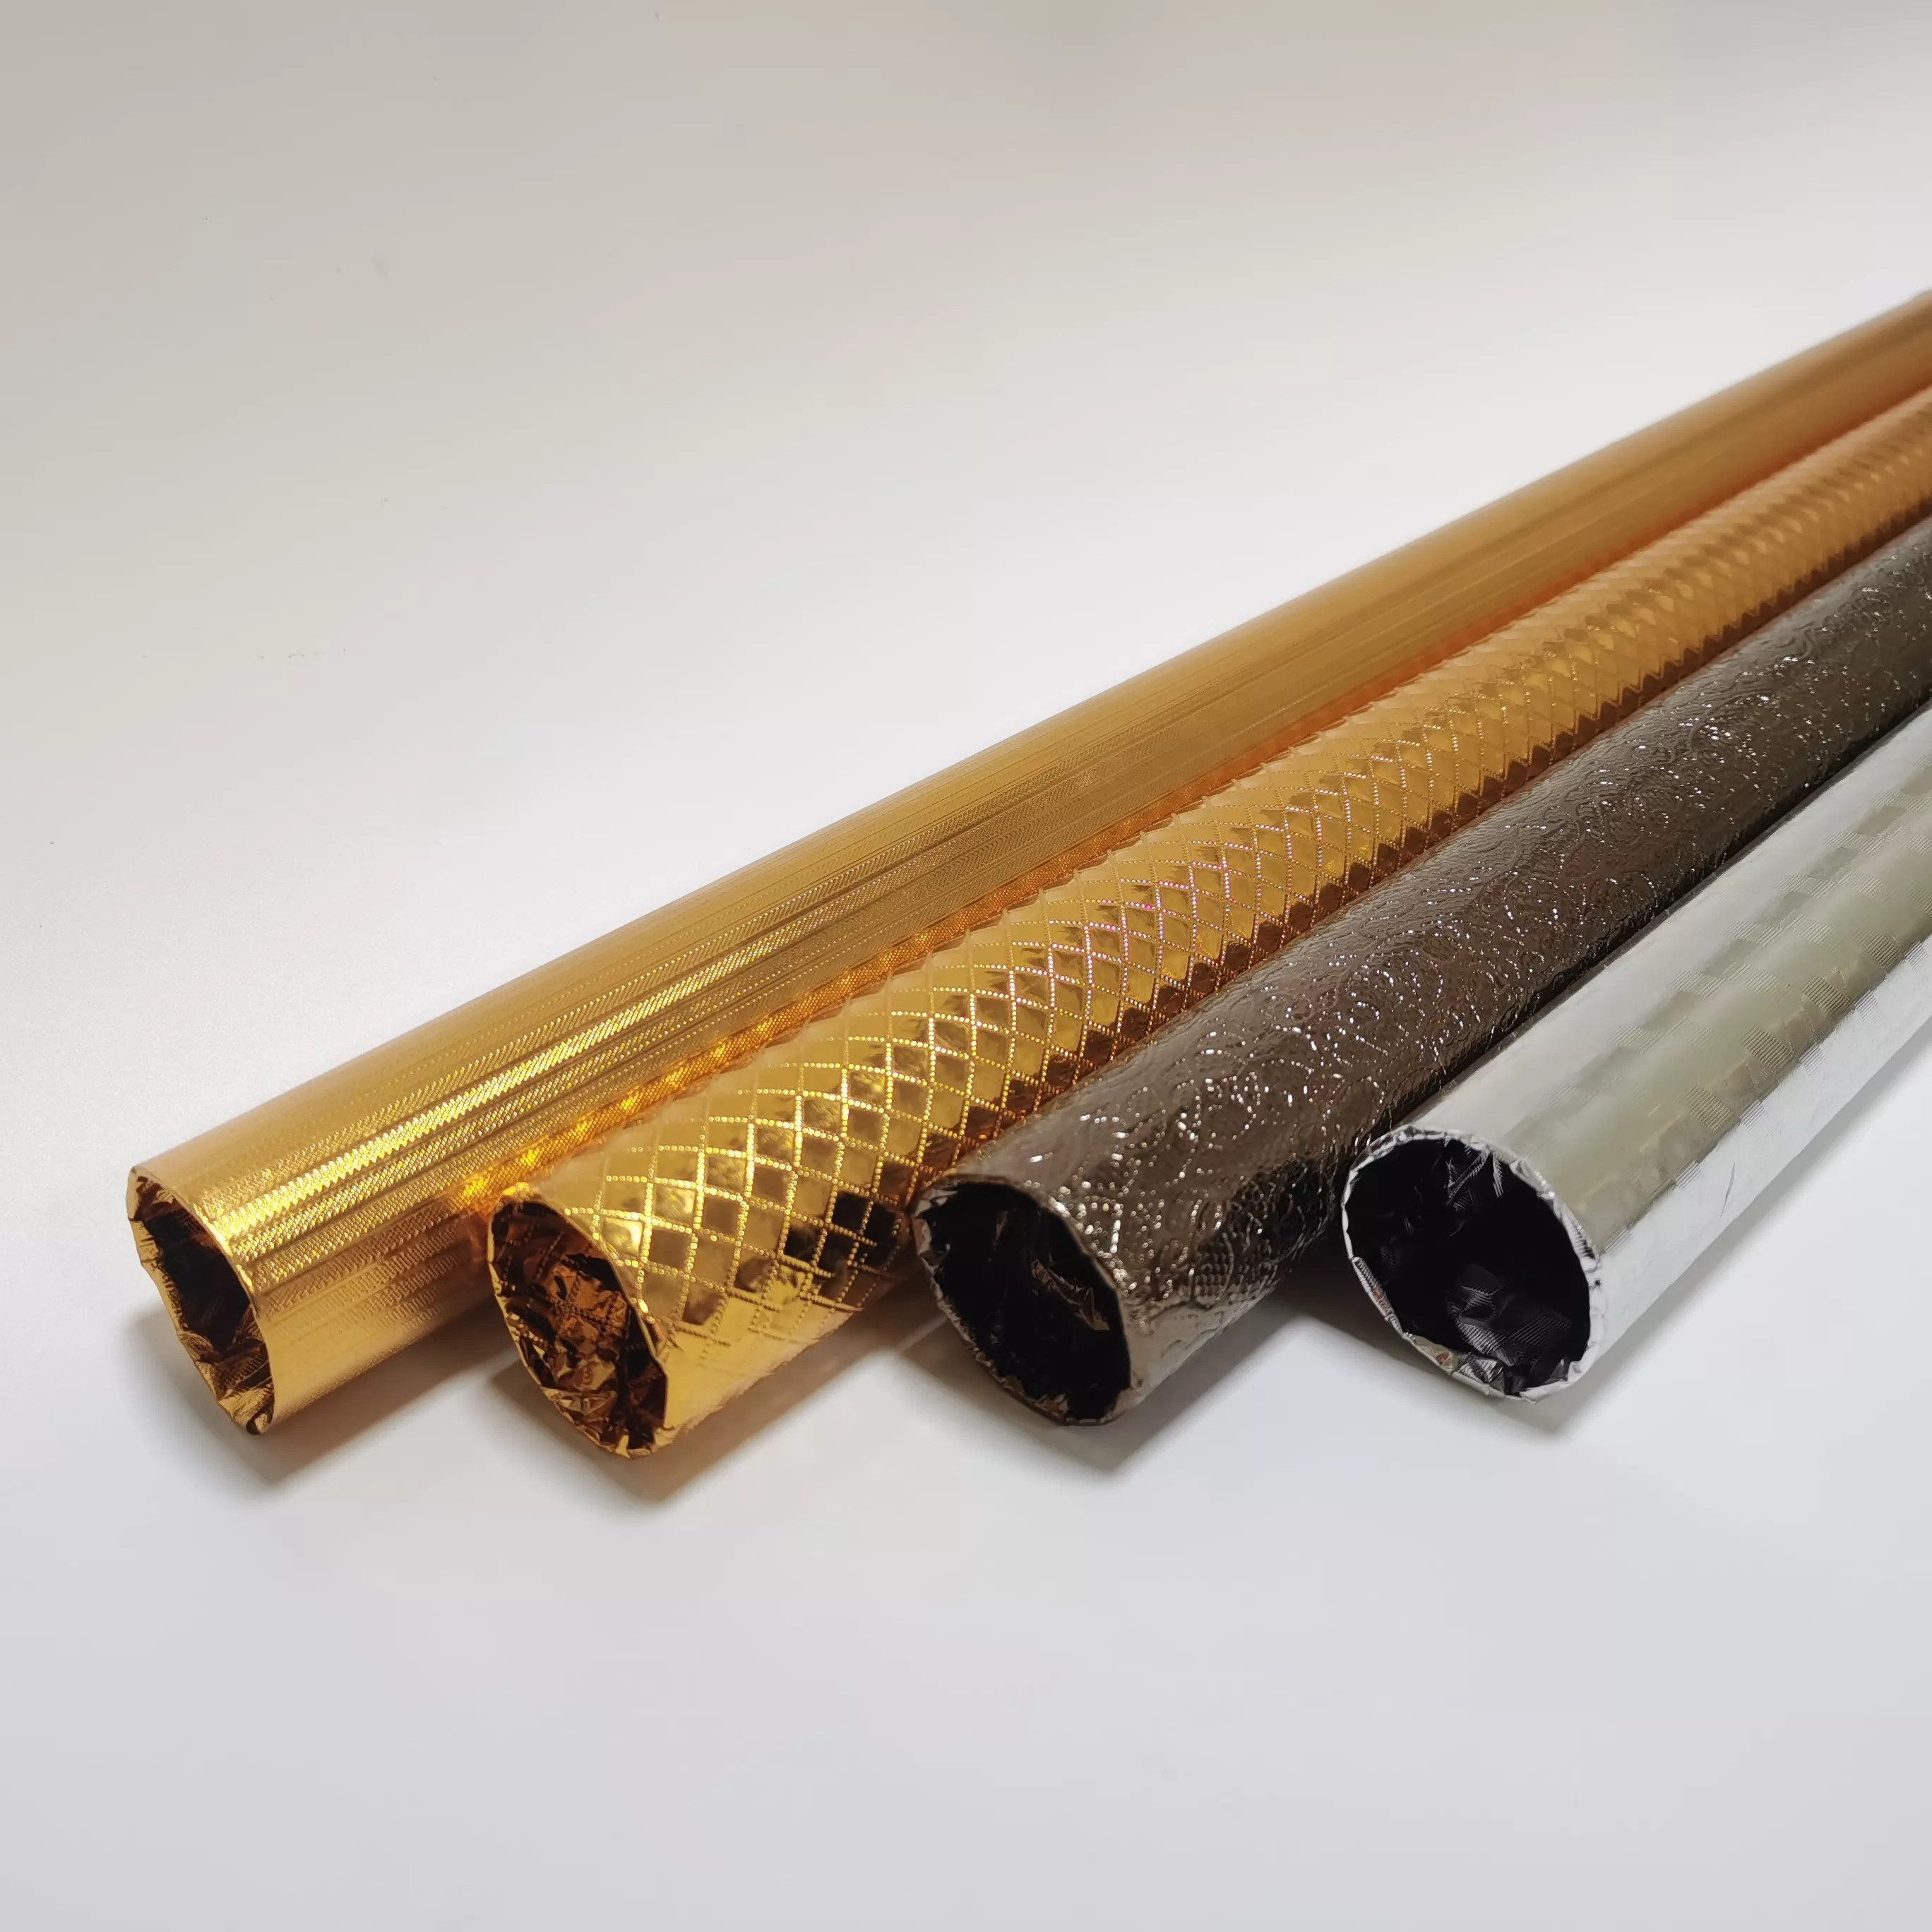 low price iron curtain rod curtain pipe wrapped in golden color plastic paper ir 01 buy iron curtain rods plastic paper wrapped curtain poles round